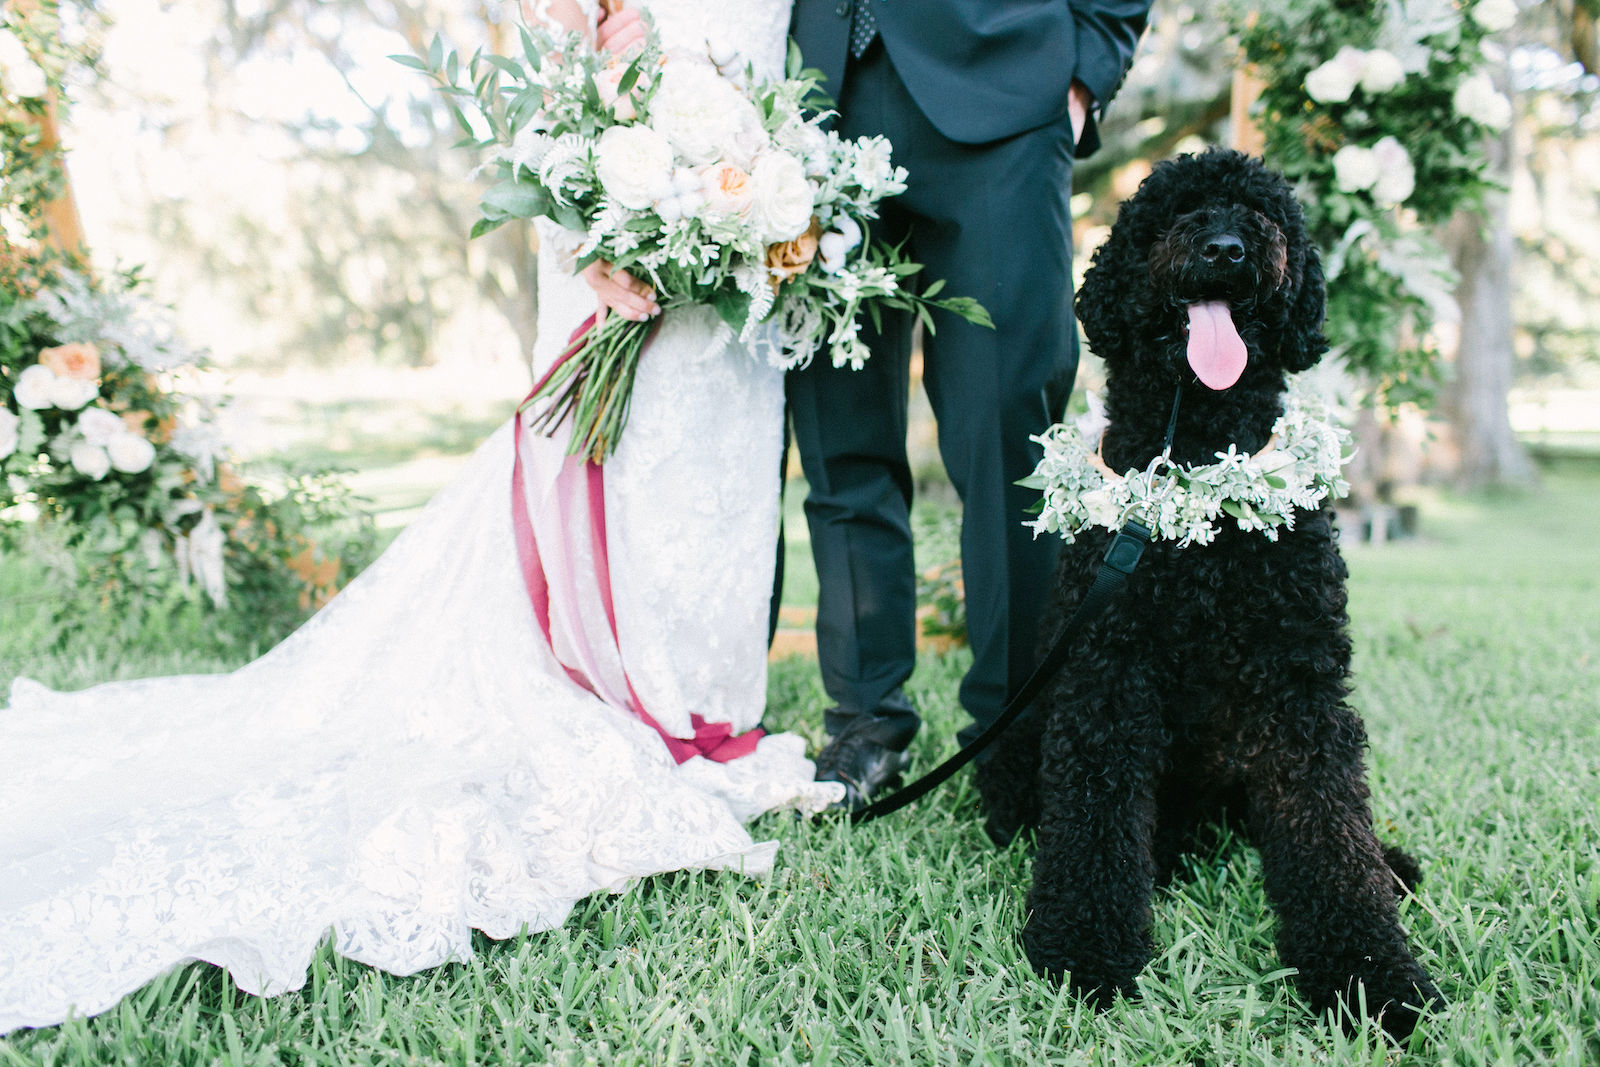 Outdoor Florida Bride and Groom Portrait with Pet Dog Labradoodle | Best Dog of Honor with Floral Collar | Ivory Champagne and Peach Natural Bouquet with Roses Astilbe and Greenery tied with Blush Pink and Mauve Ribbons